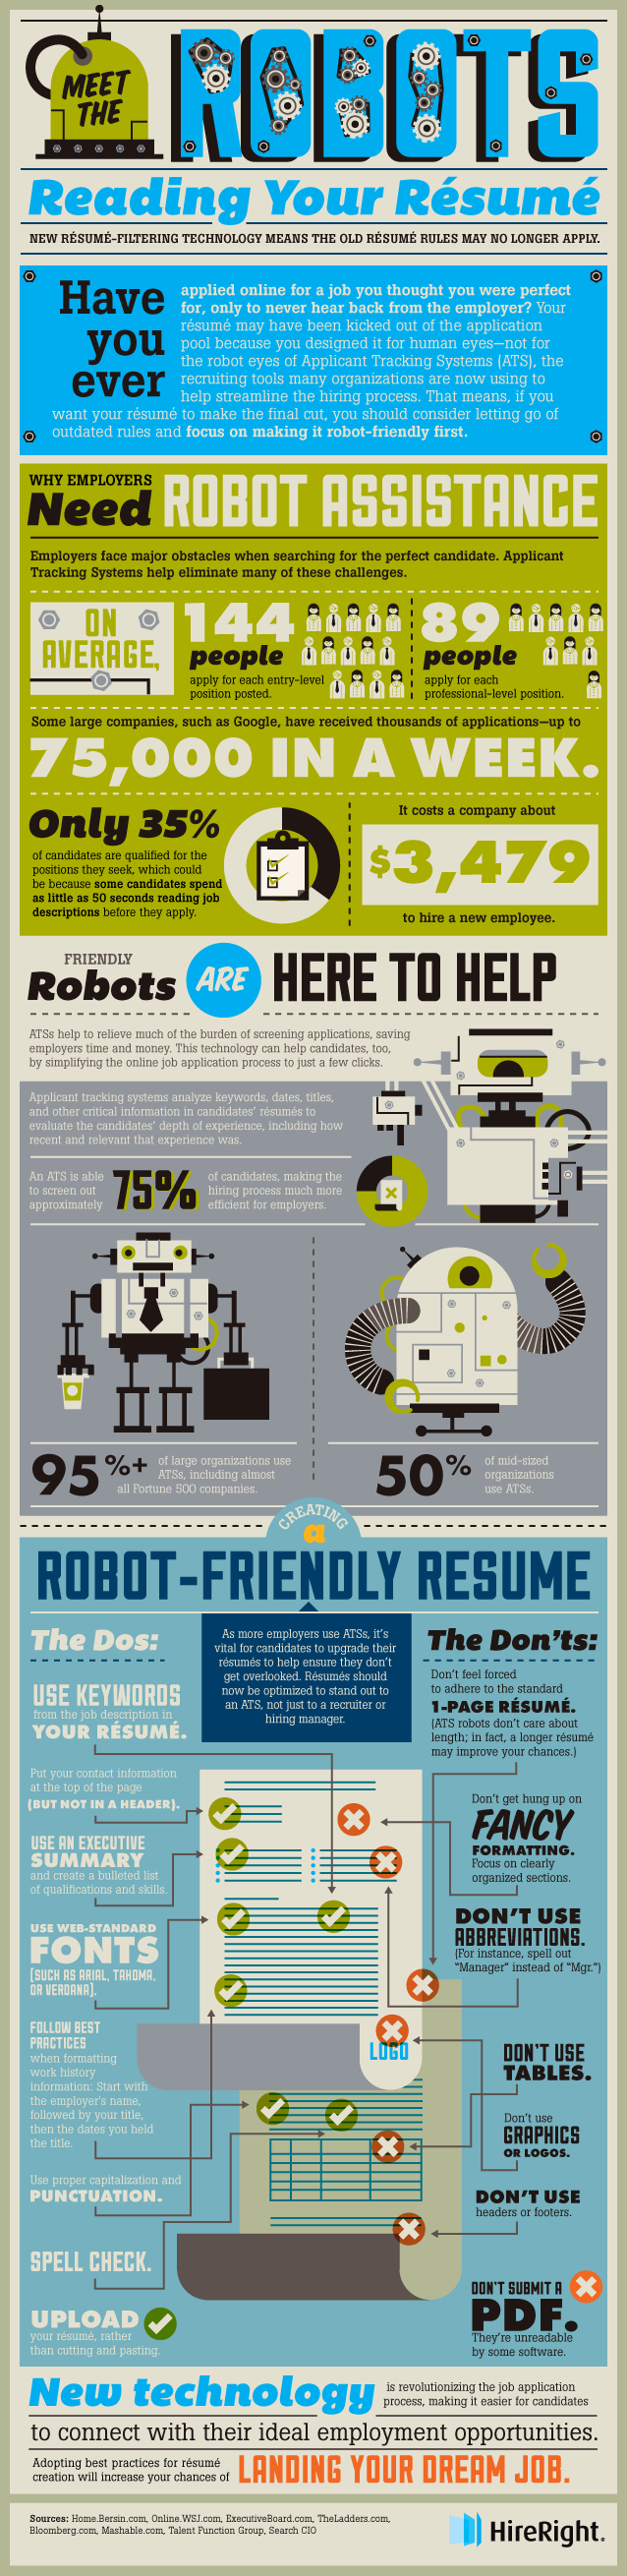 meet the robots reading your resume an infographic by hireright